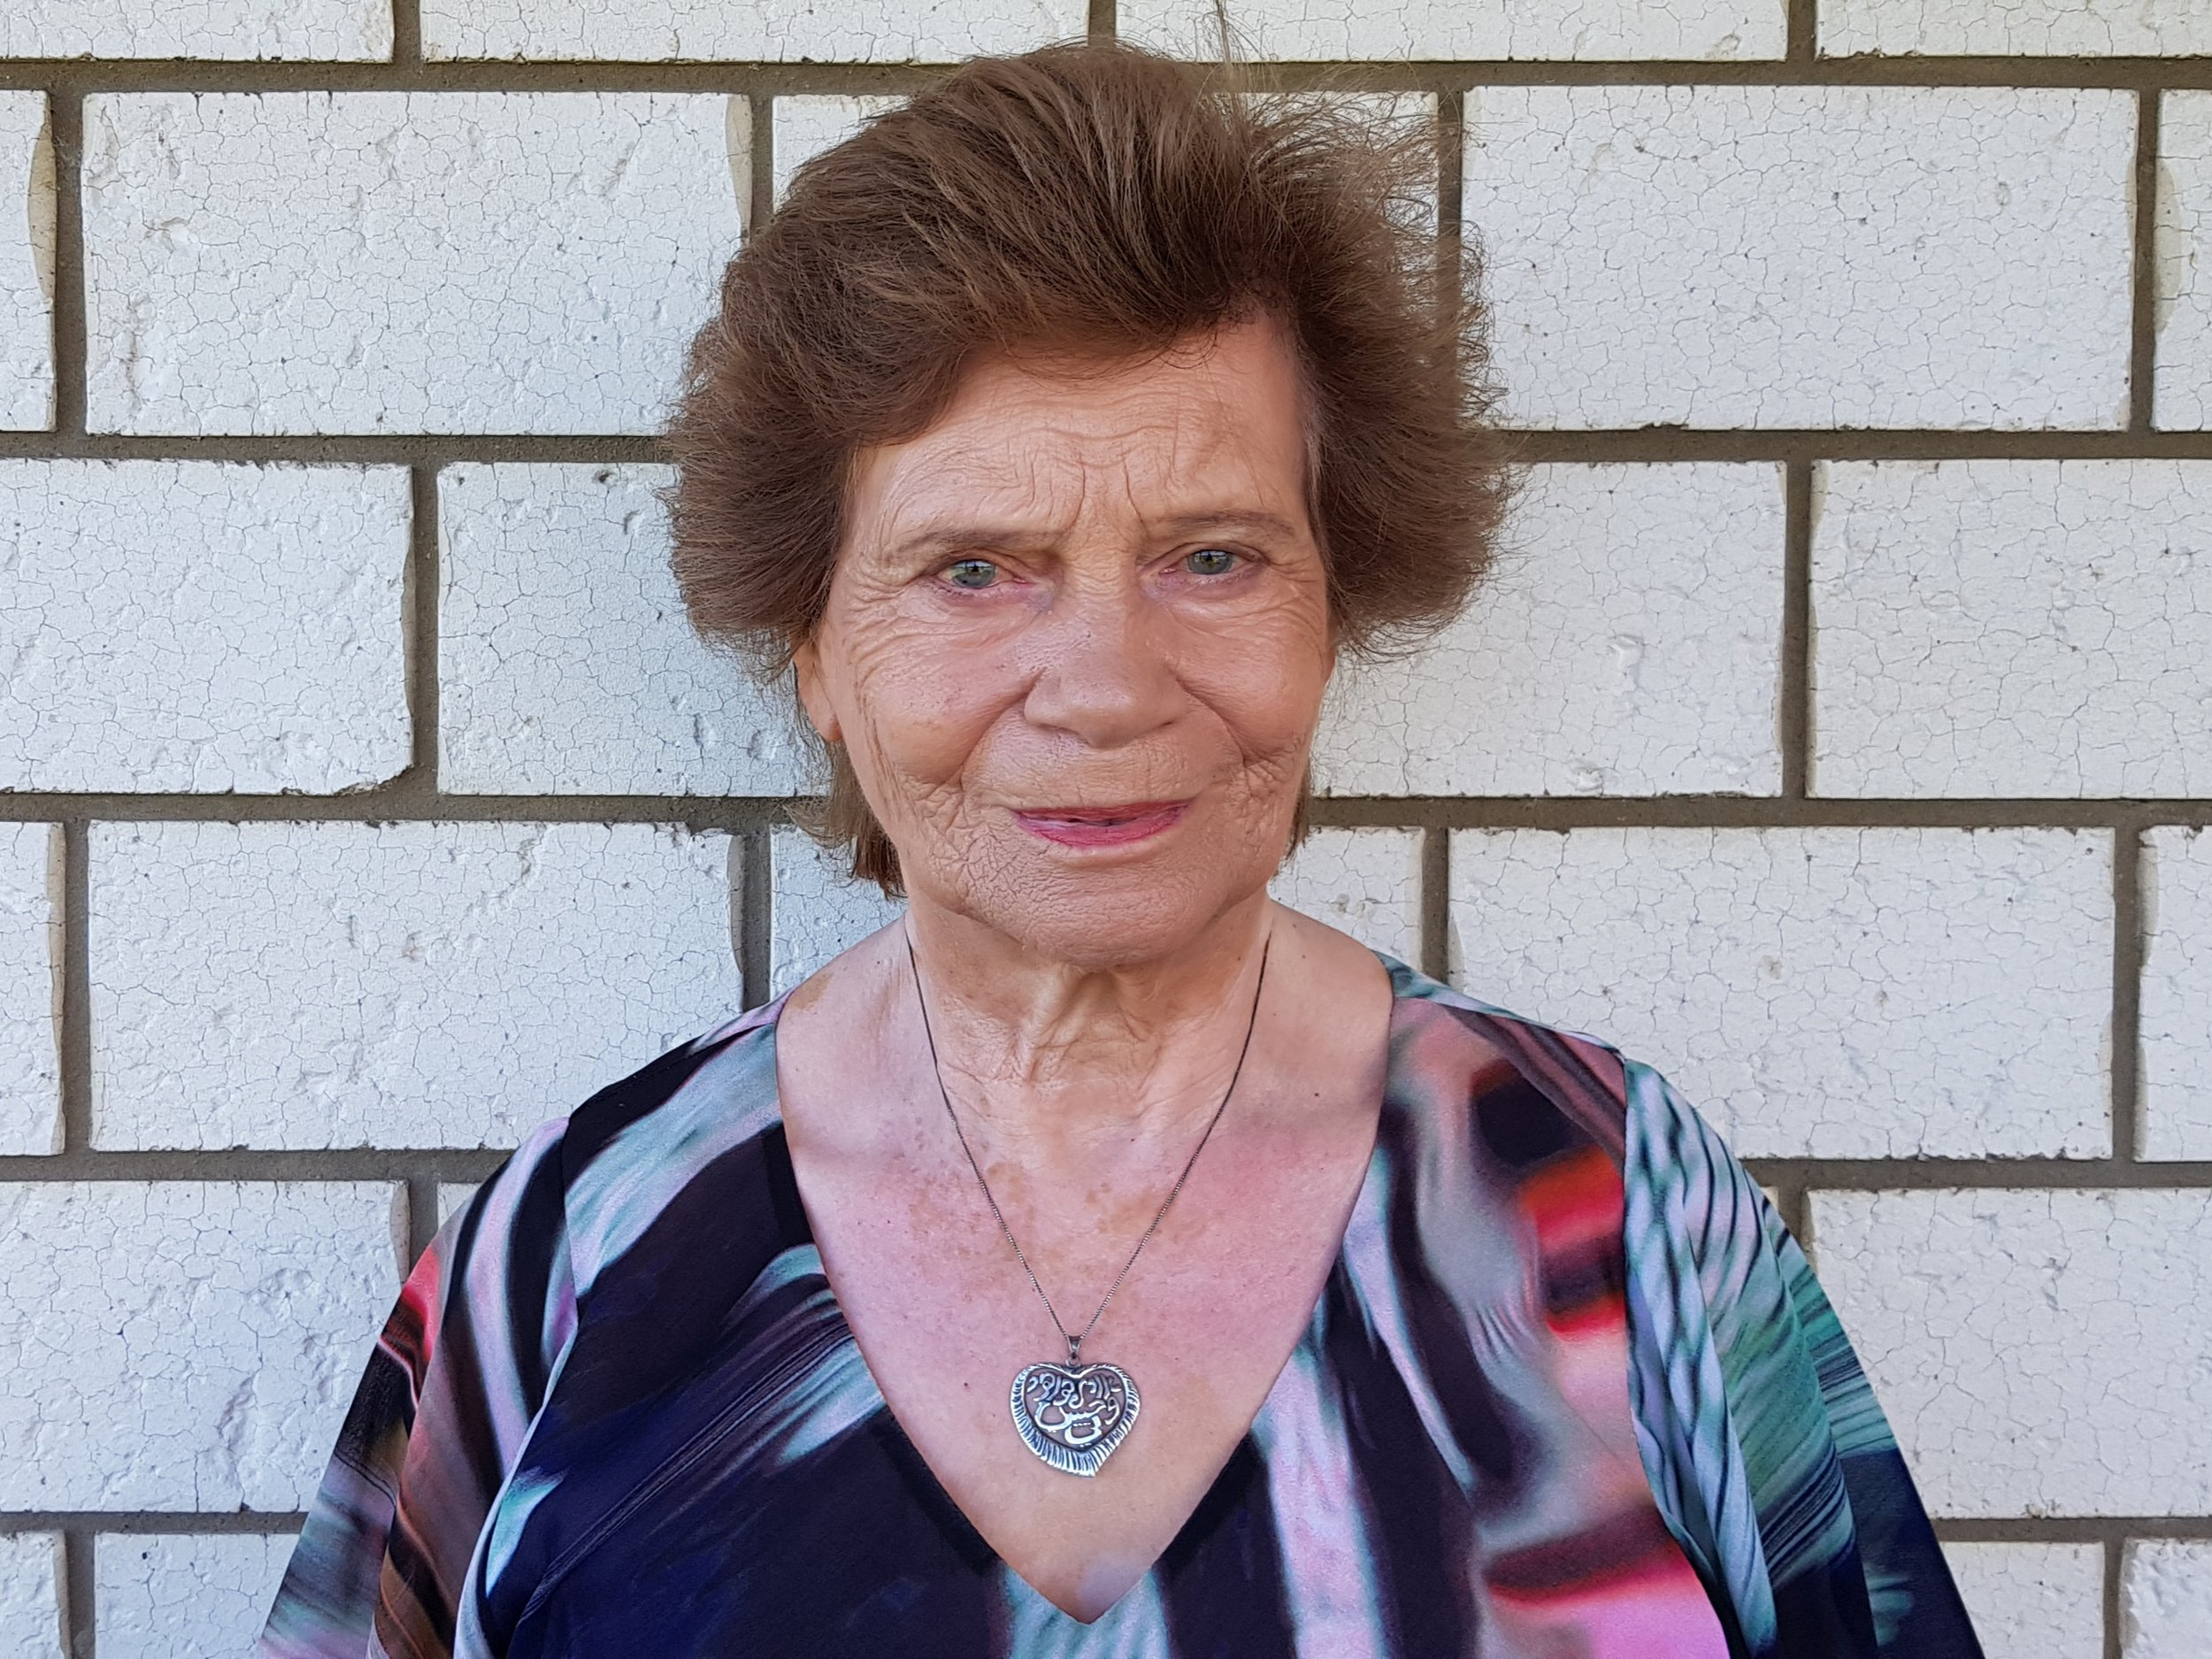 Gwenyth Rodgers - Gwenyth, Barry's wife, is an Emu Gully Director and spent many years running all office processes for camps. She is now retired from our front line reception, however serves a vital role on the Board giving direction to the future of Emu Gully.